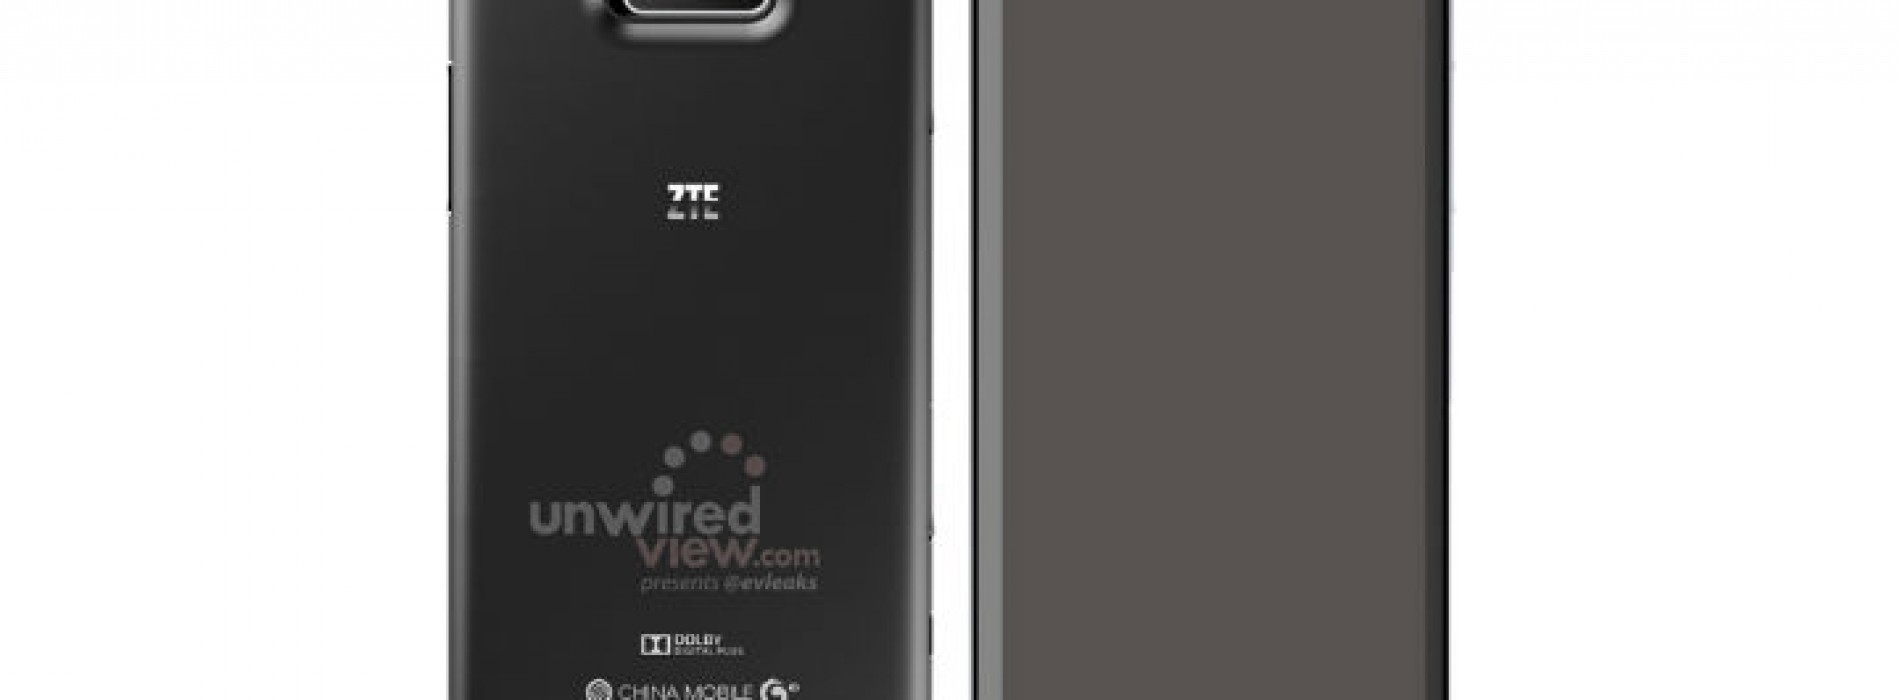 5.7-inch ZTE P945 tipped for late Q1